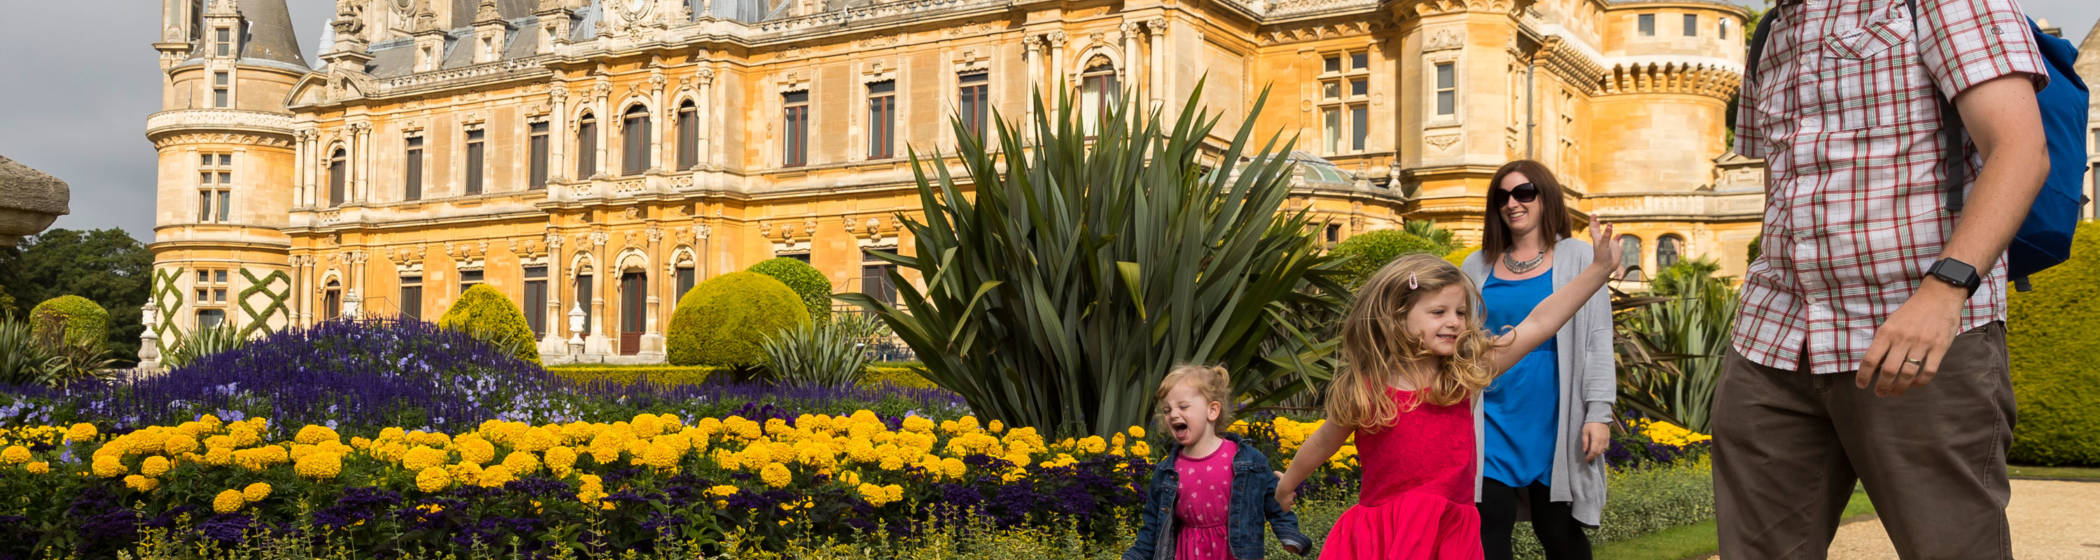 Family walking round the South front Parterre